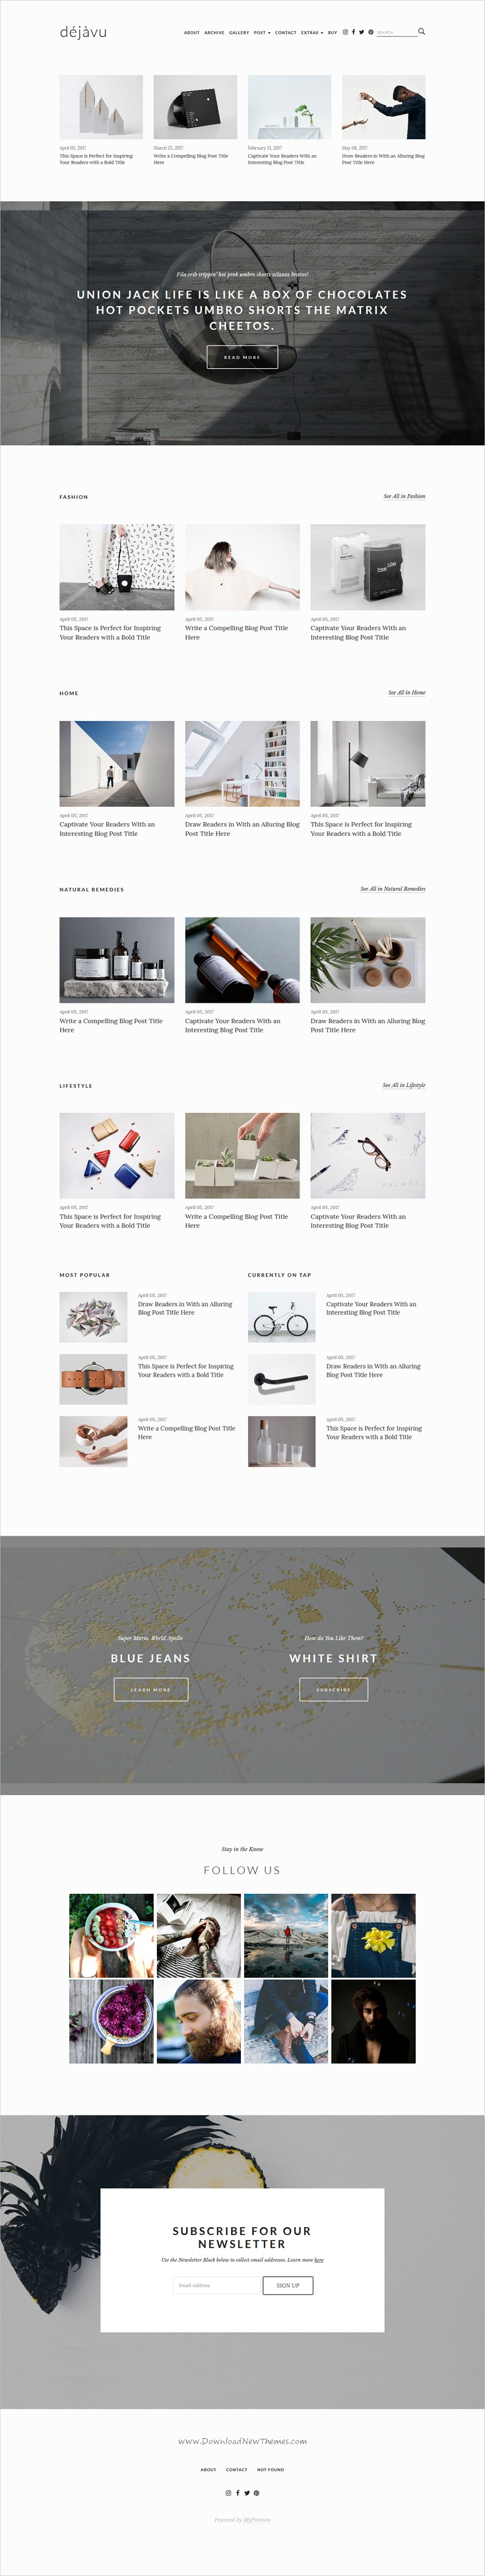 DejaVu is a creative & #minimal 3in1 design #bootstrap template for ...